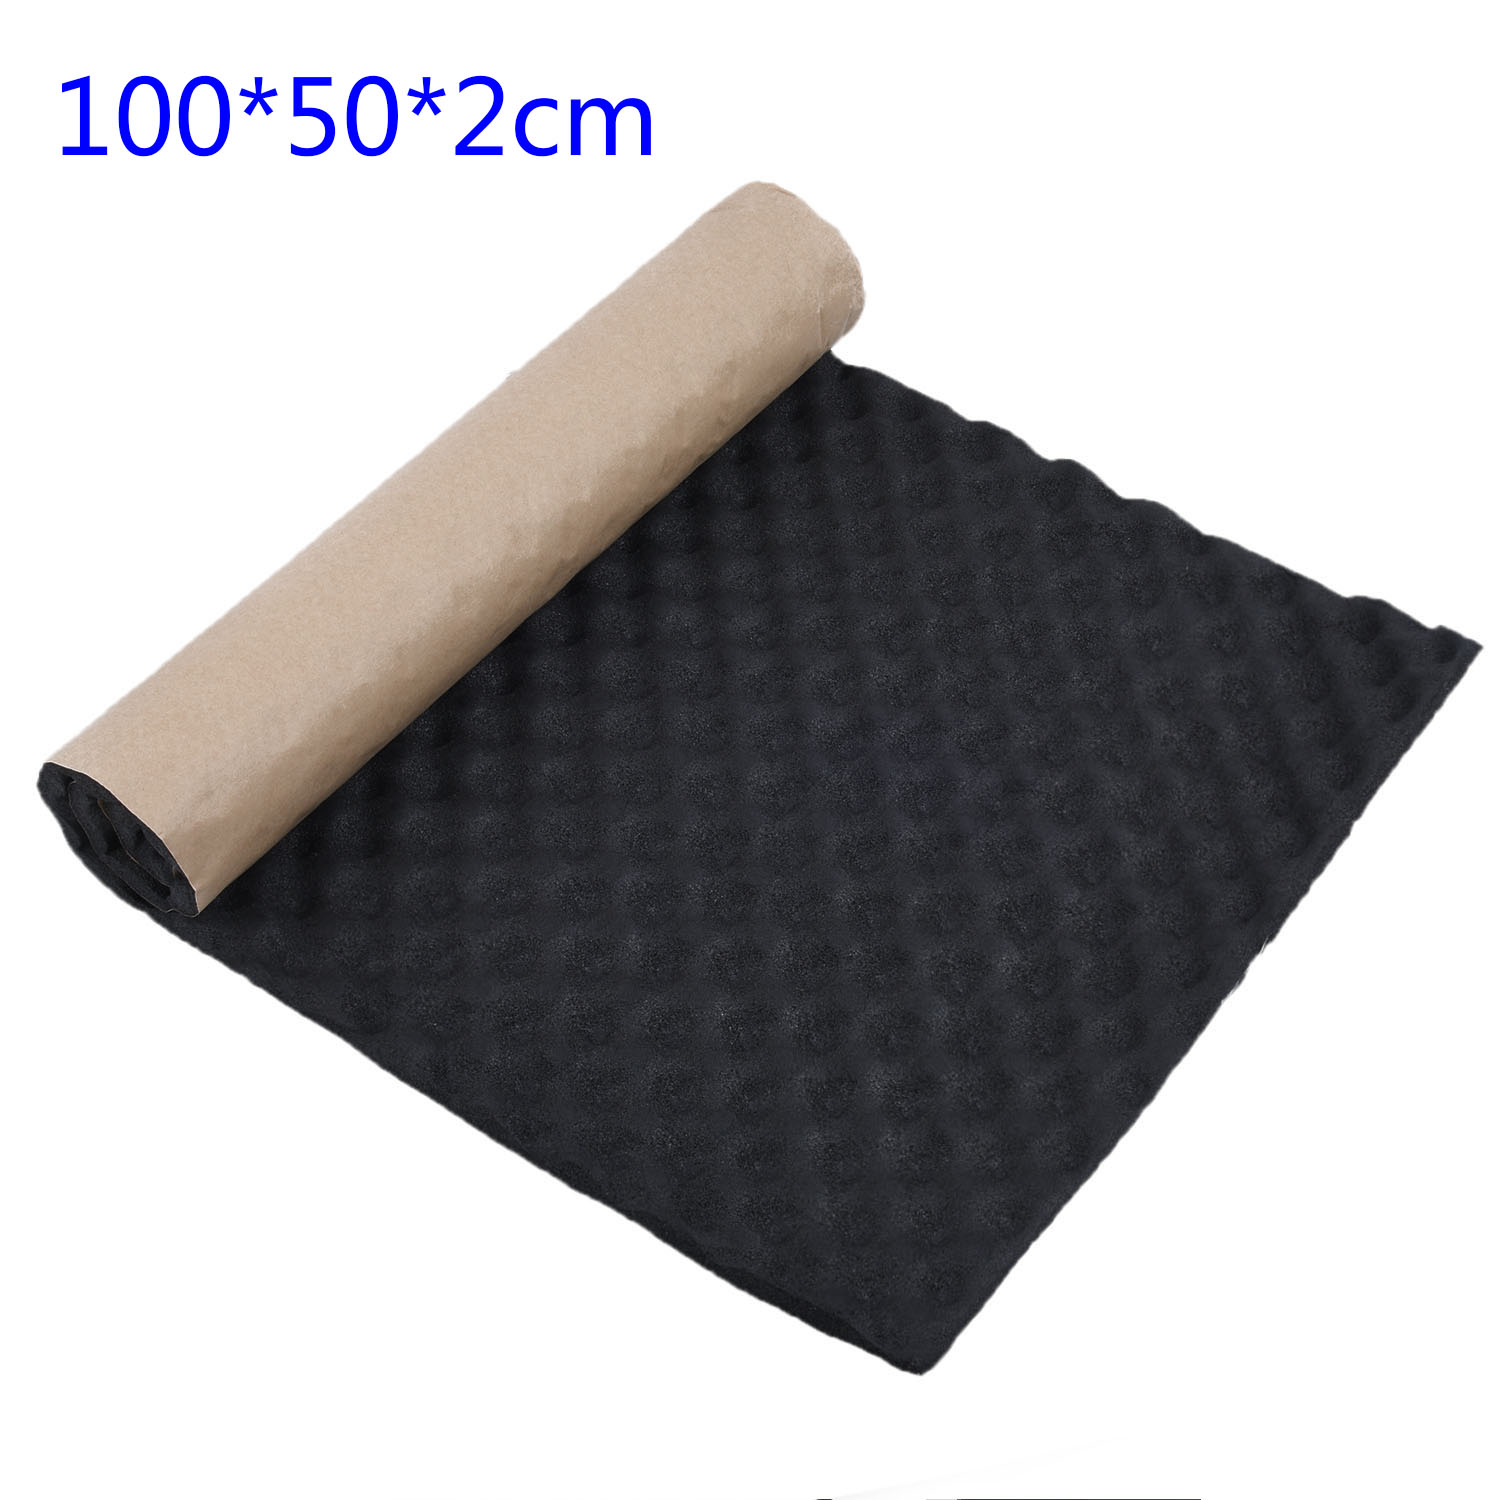 Car Sound Proofing Deadening Anti-Noise Insulation Heat Mat Door Panel 100X50cm